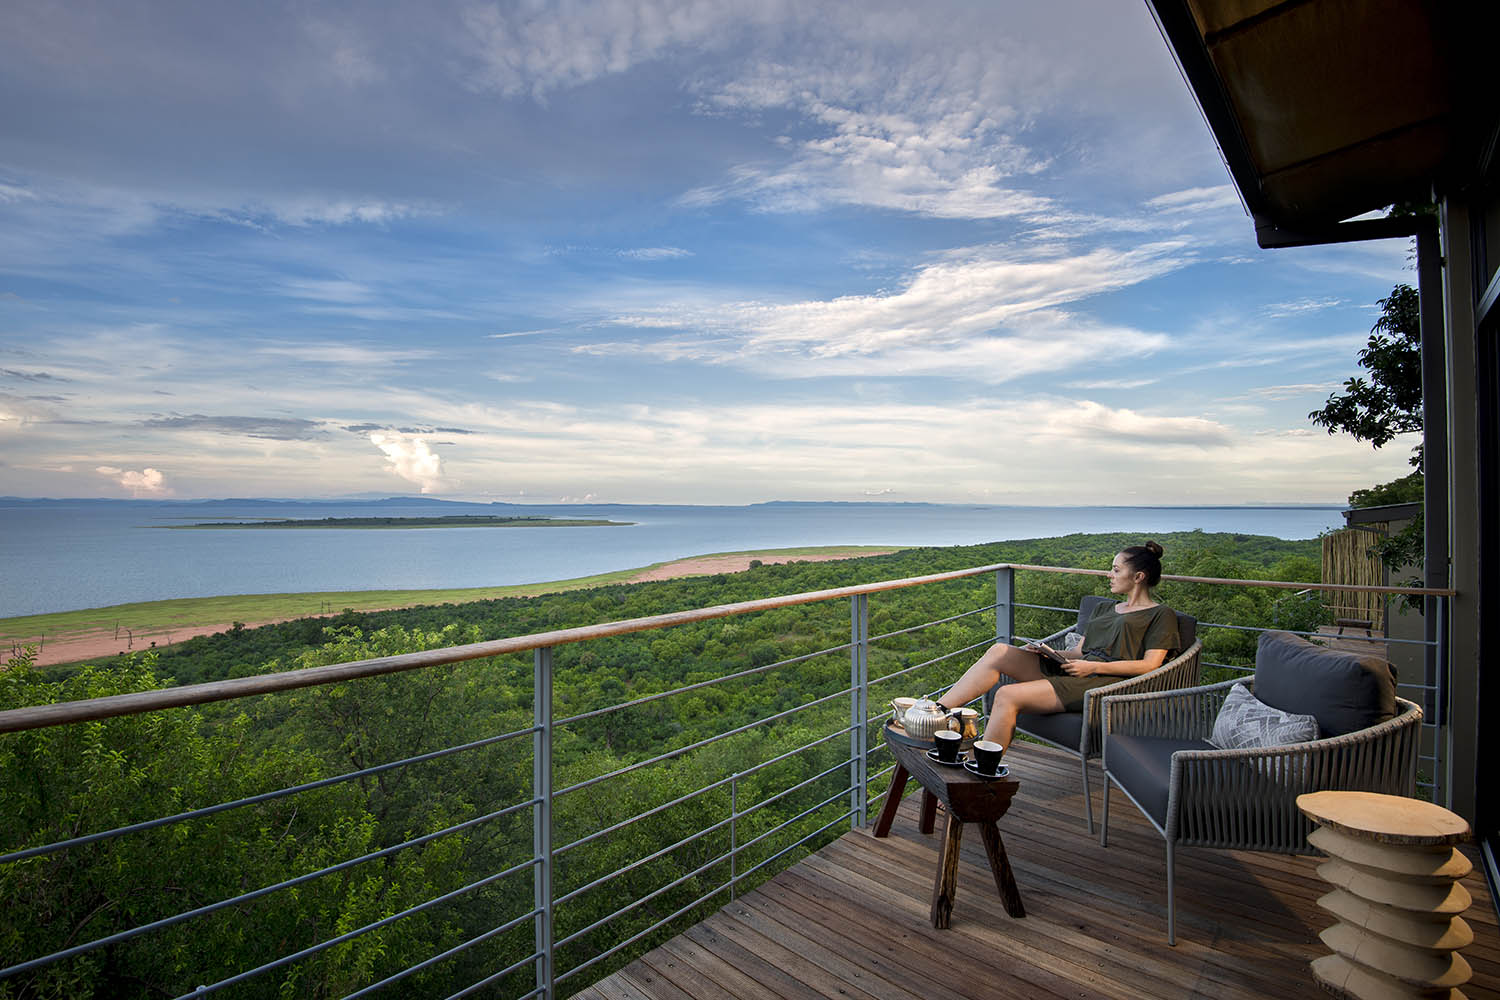 bumi hills safari-lodge-lake-kariba-zimbabwe-zambia-in-style-luxury-safaris-african-bush-camps-sky-views-scenic